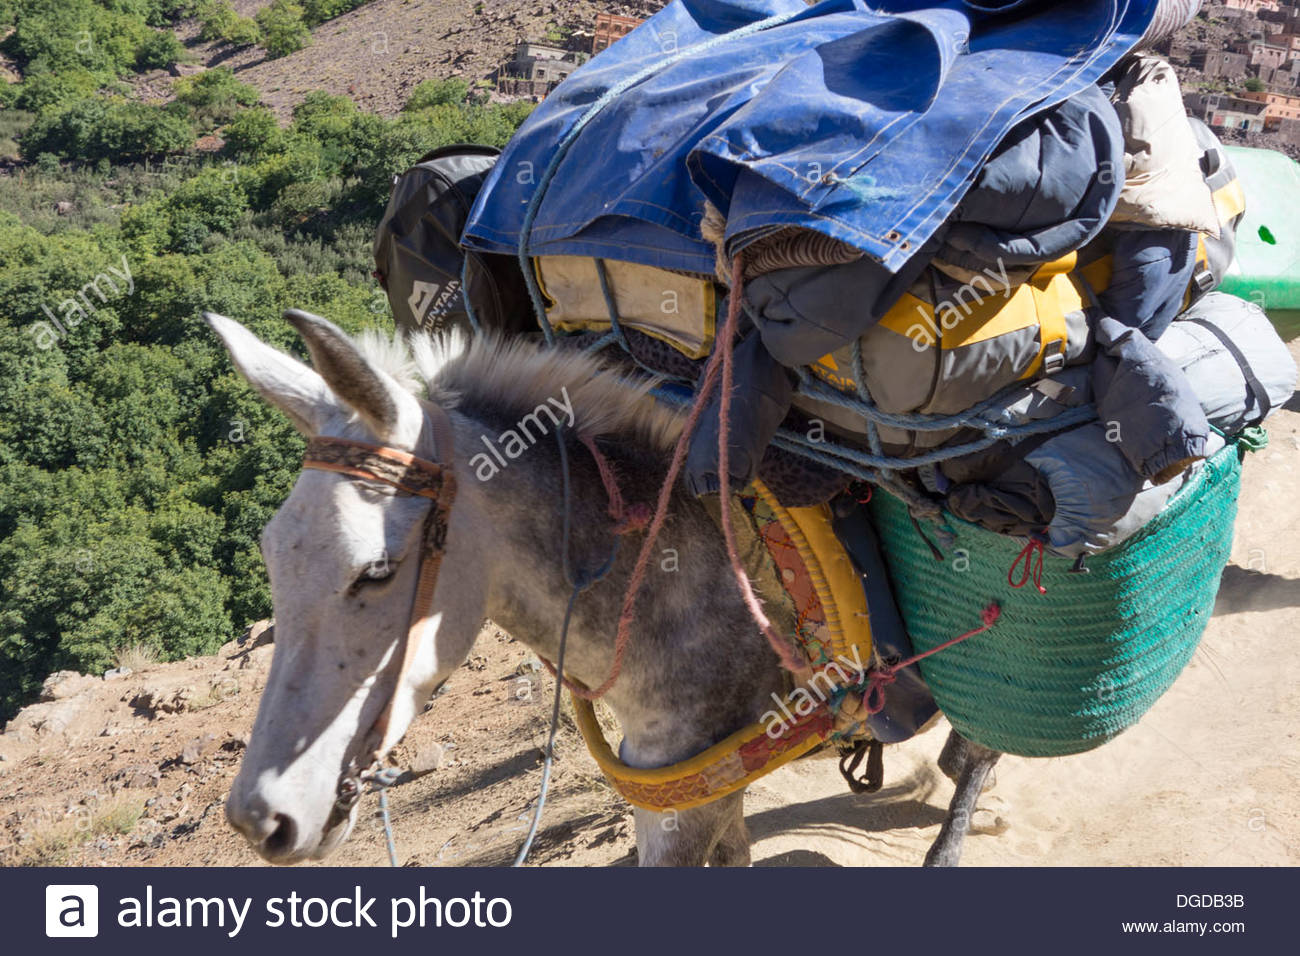 A mule heavily laden with trekkers kit heads down the trail to Imlil in the High Atlas mountains, Morocco - Stock Image